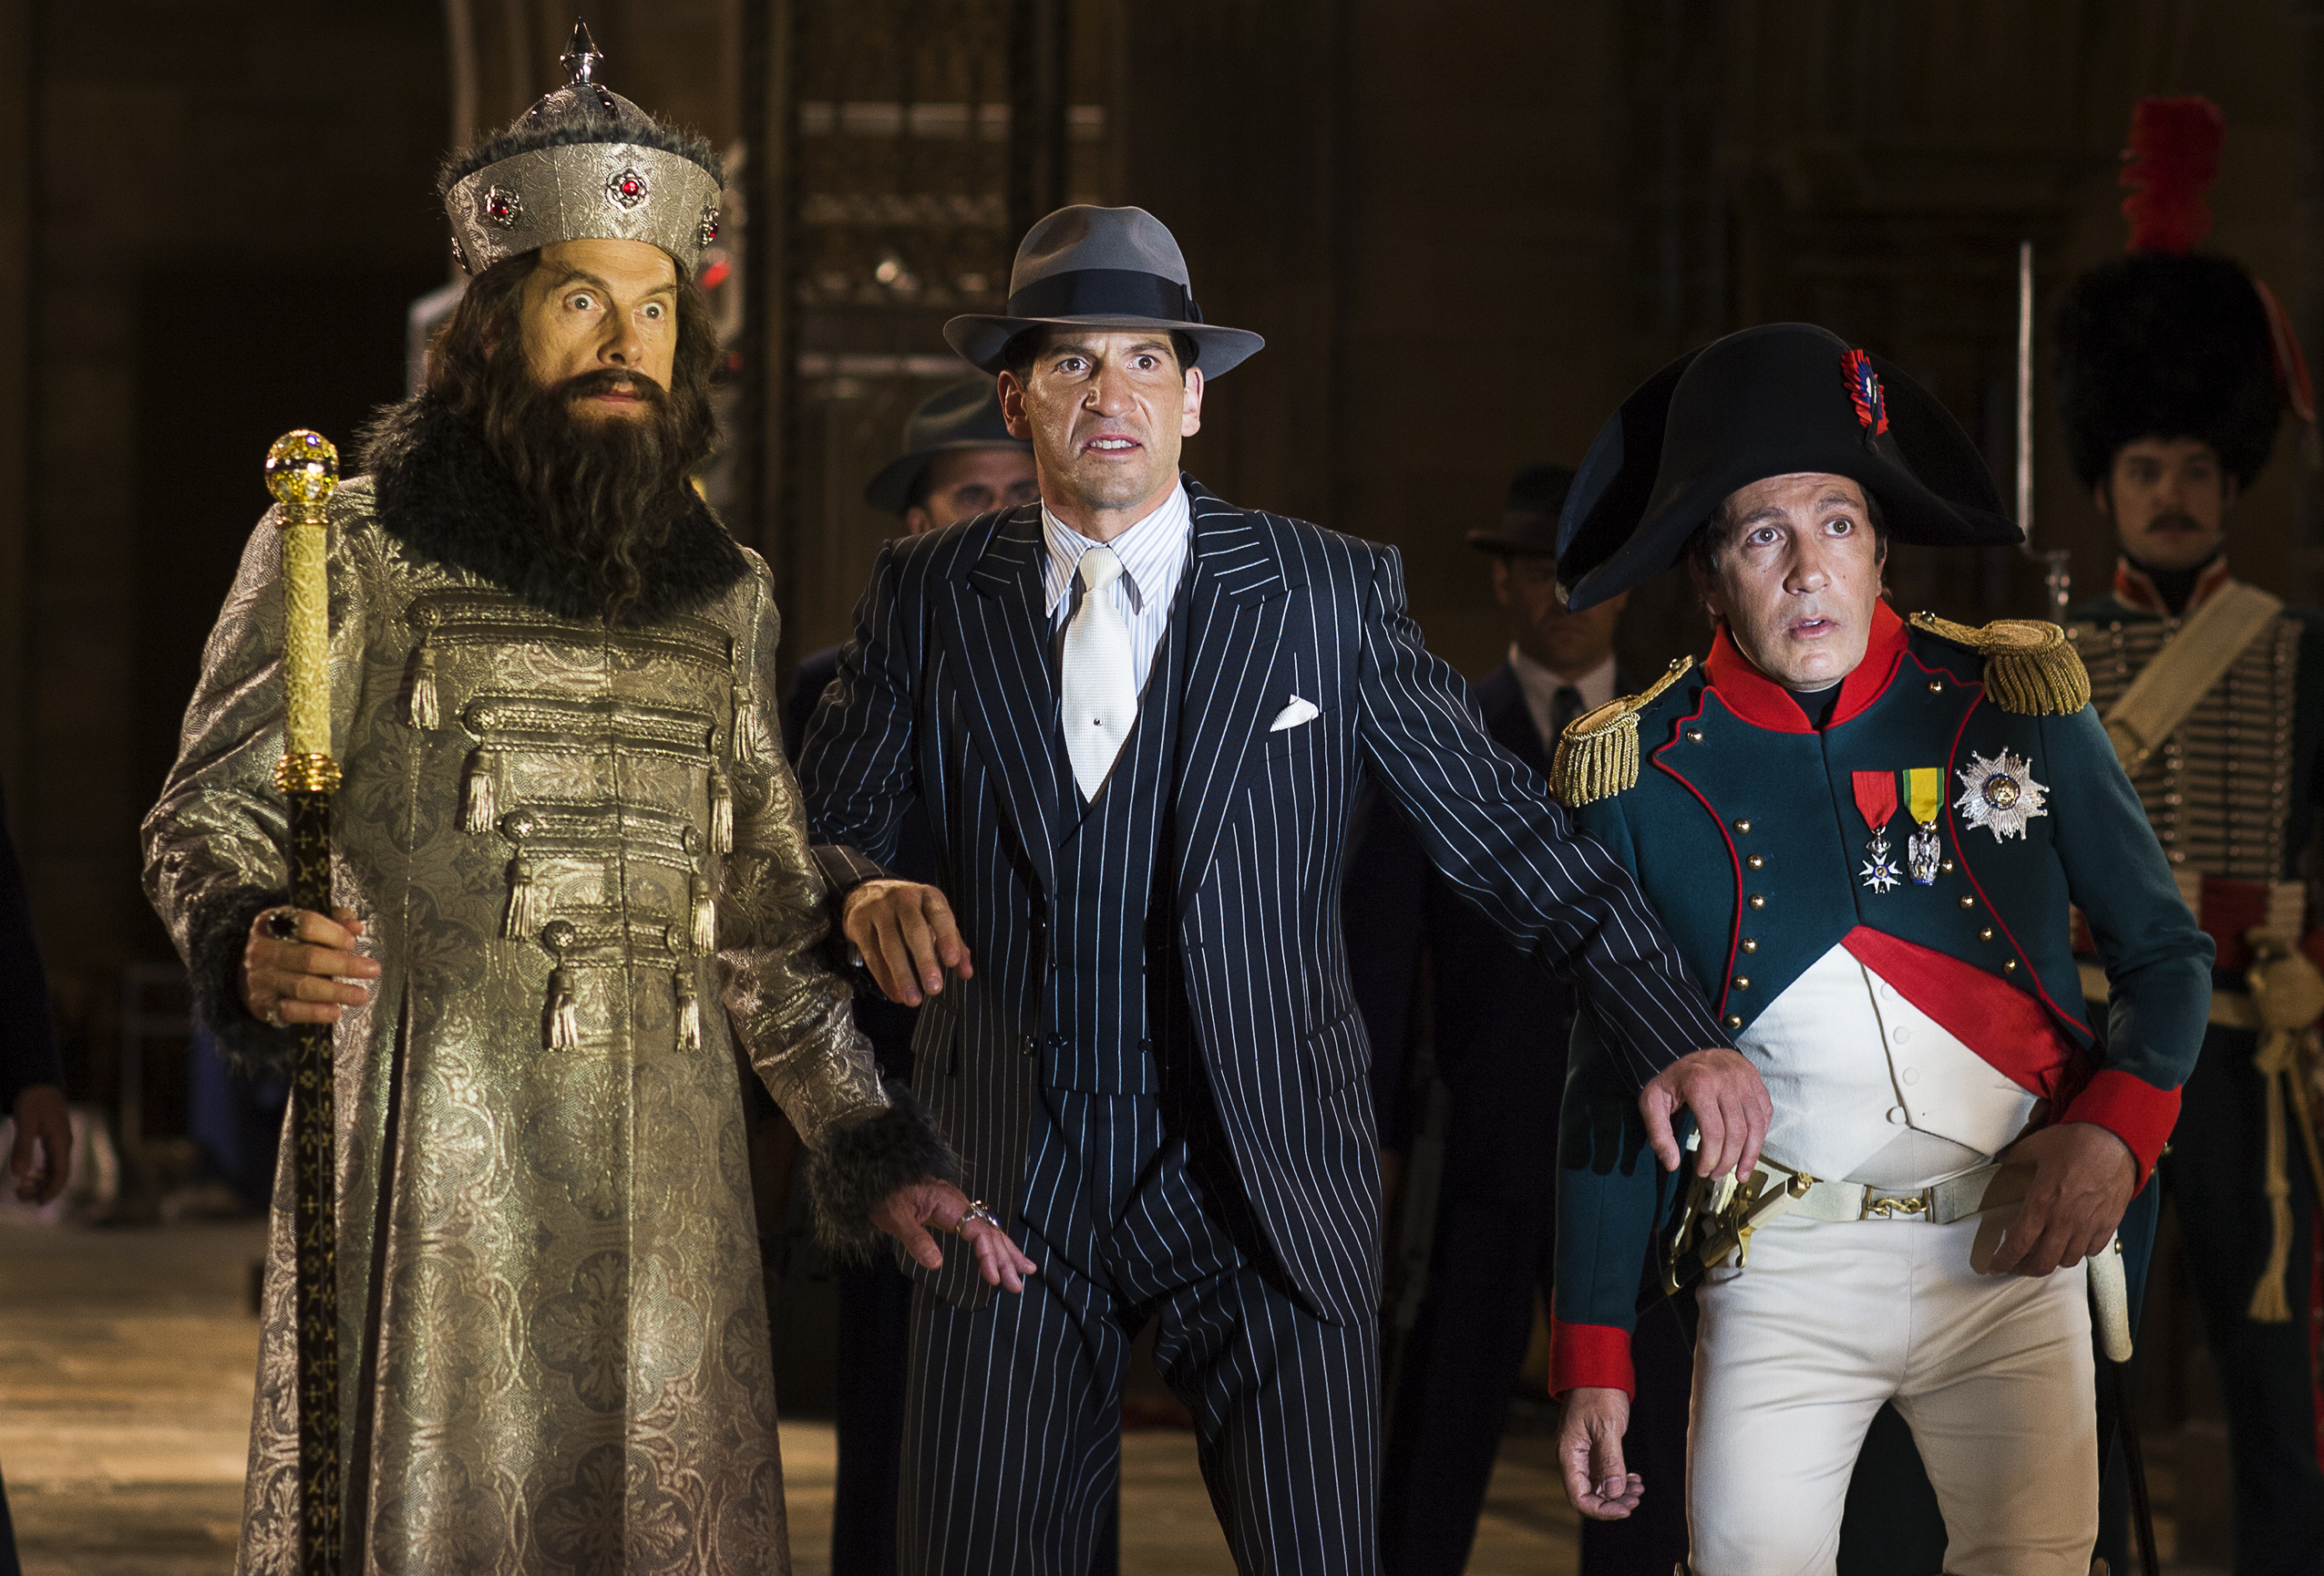 Christopher Guest, Jon Bernthal, Alain Chabat - Night at The Museum 2